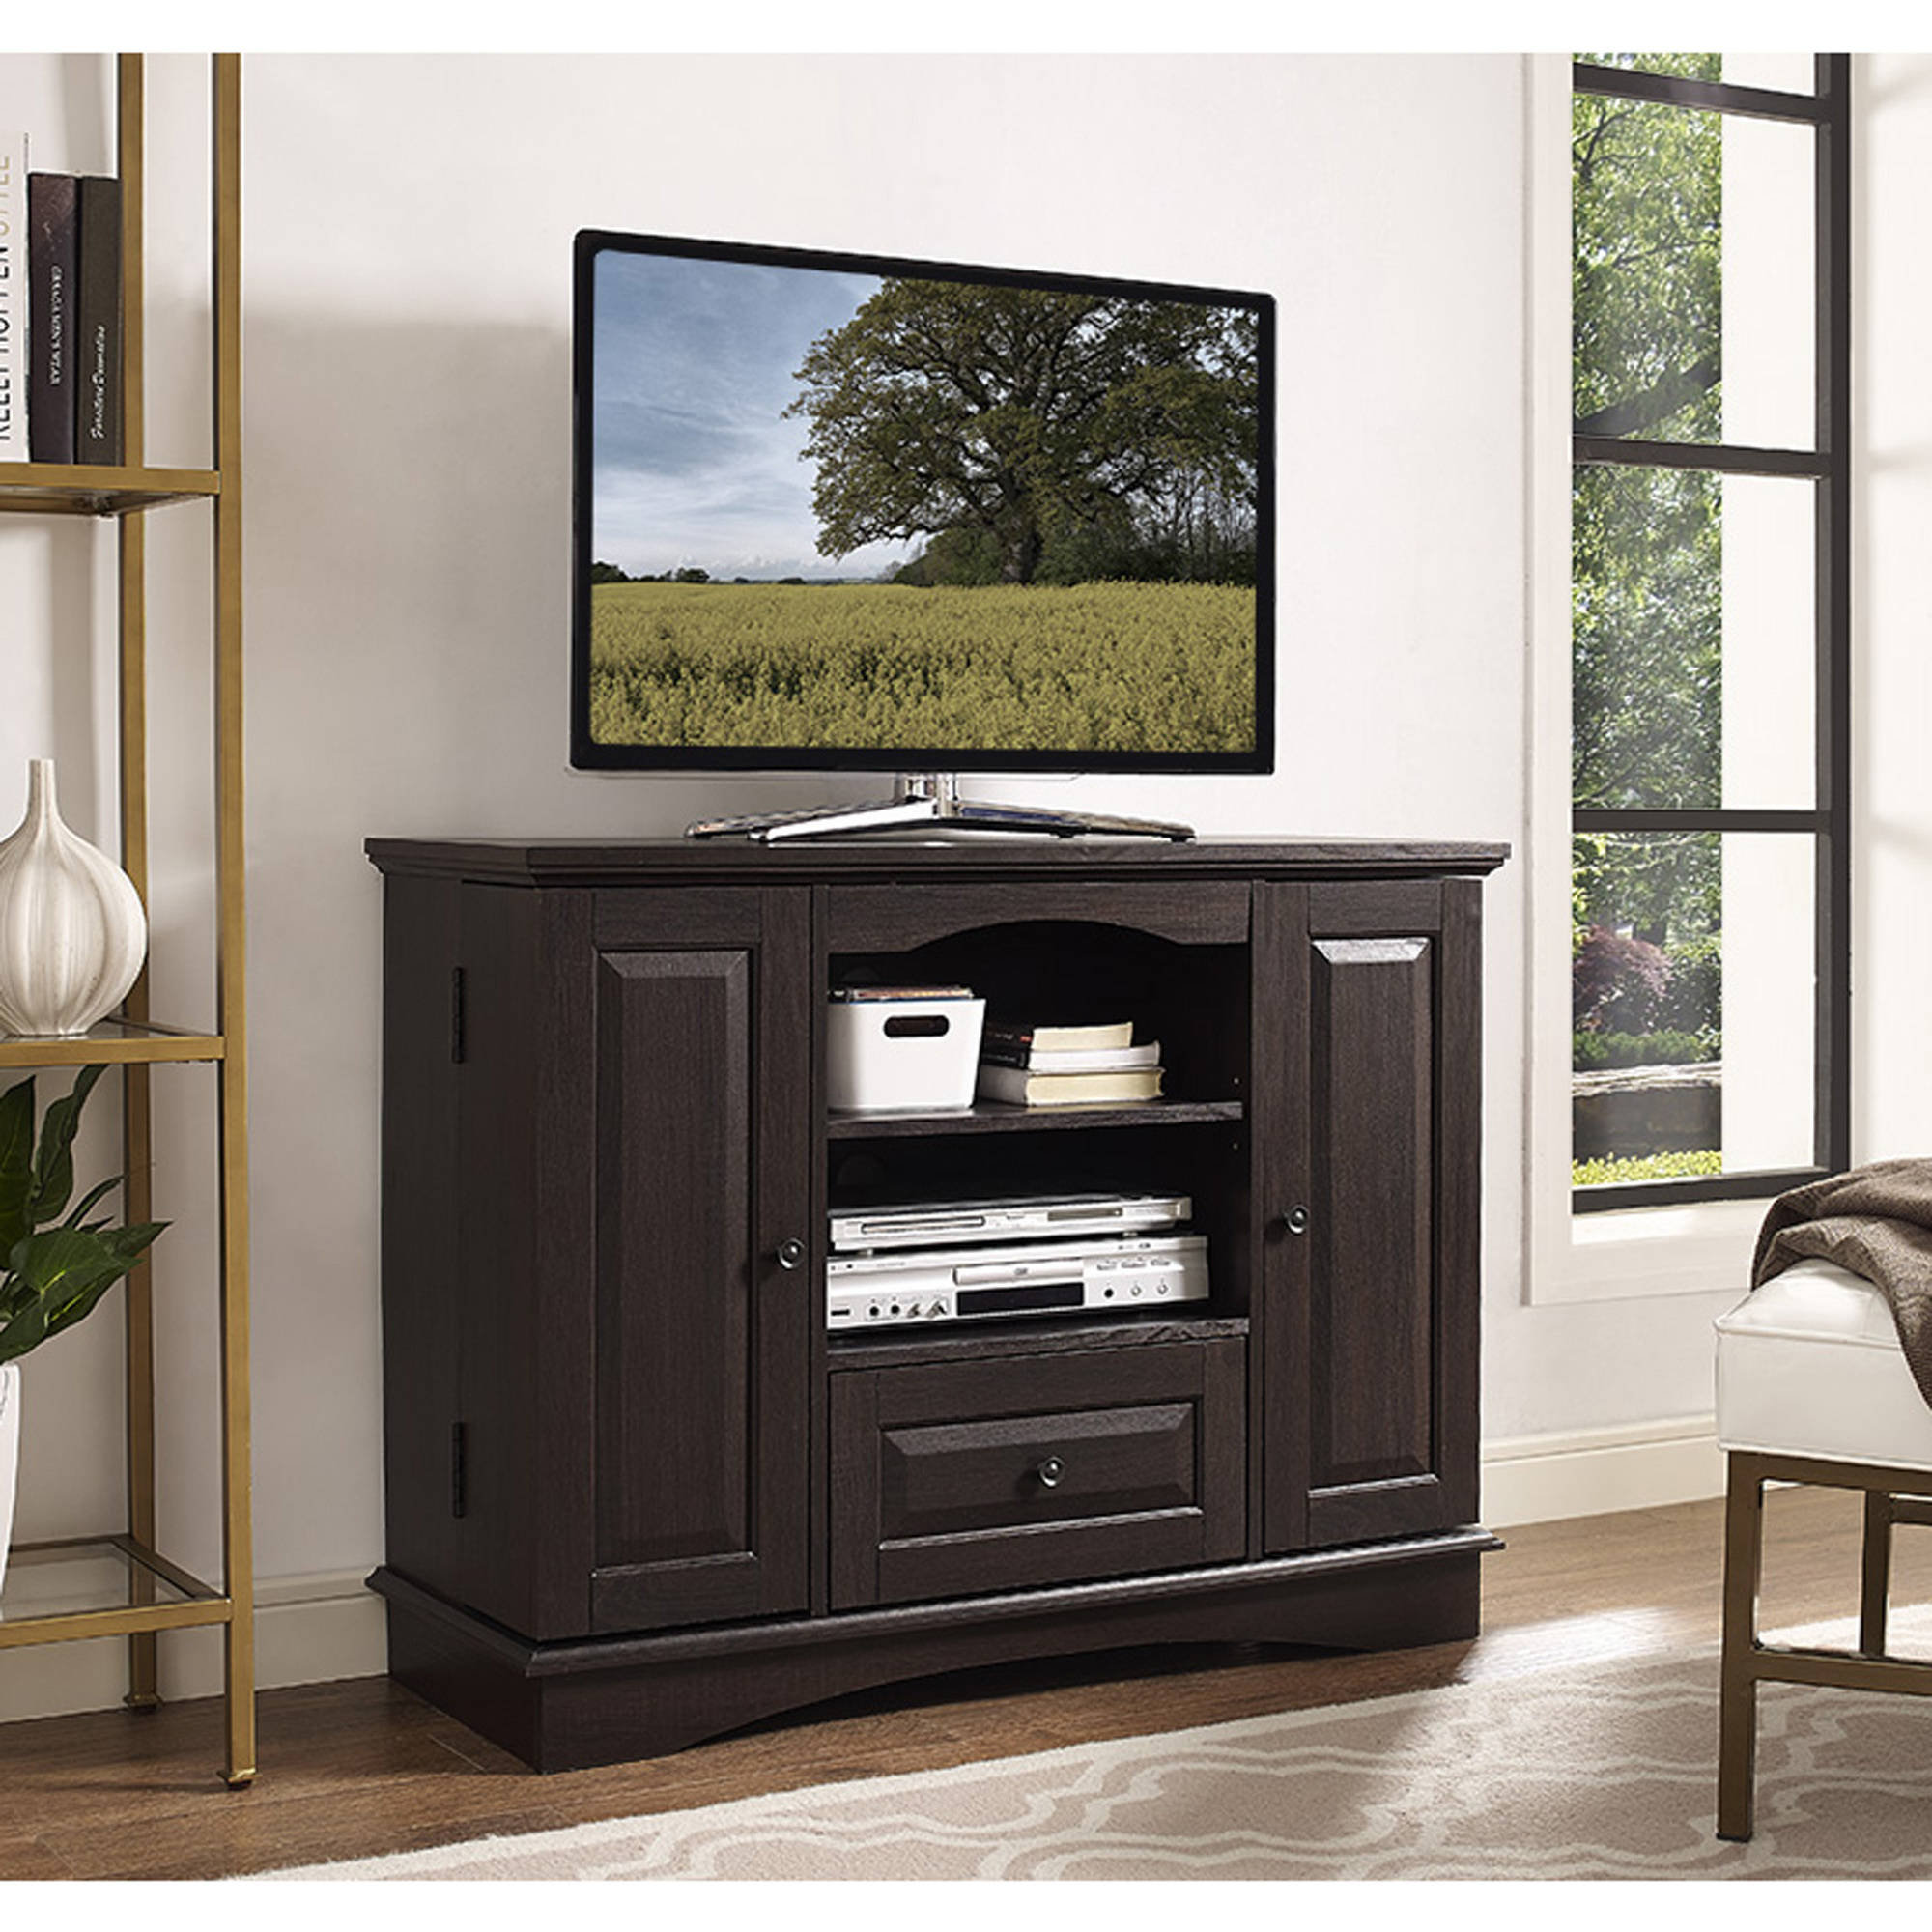 Espresso Wood HighBoy TV Stand for TVs up to 48